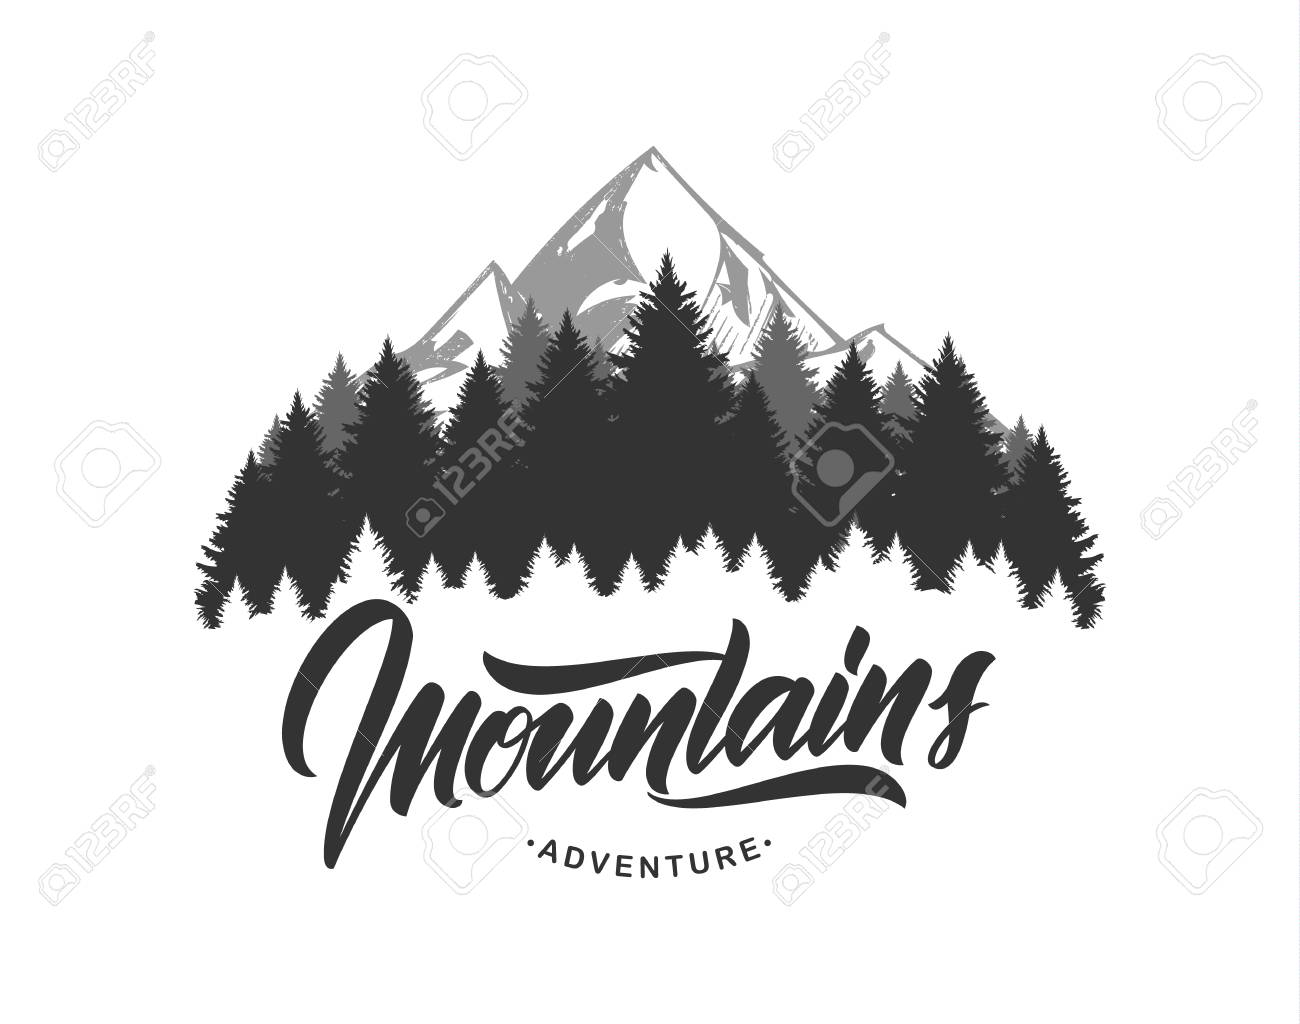 Vector illustration: Mountains emblem with handwritten type lettering. Typography design. - 102332152